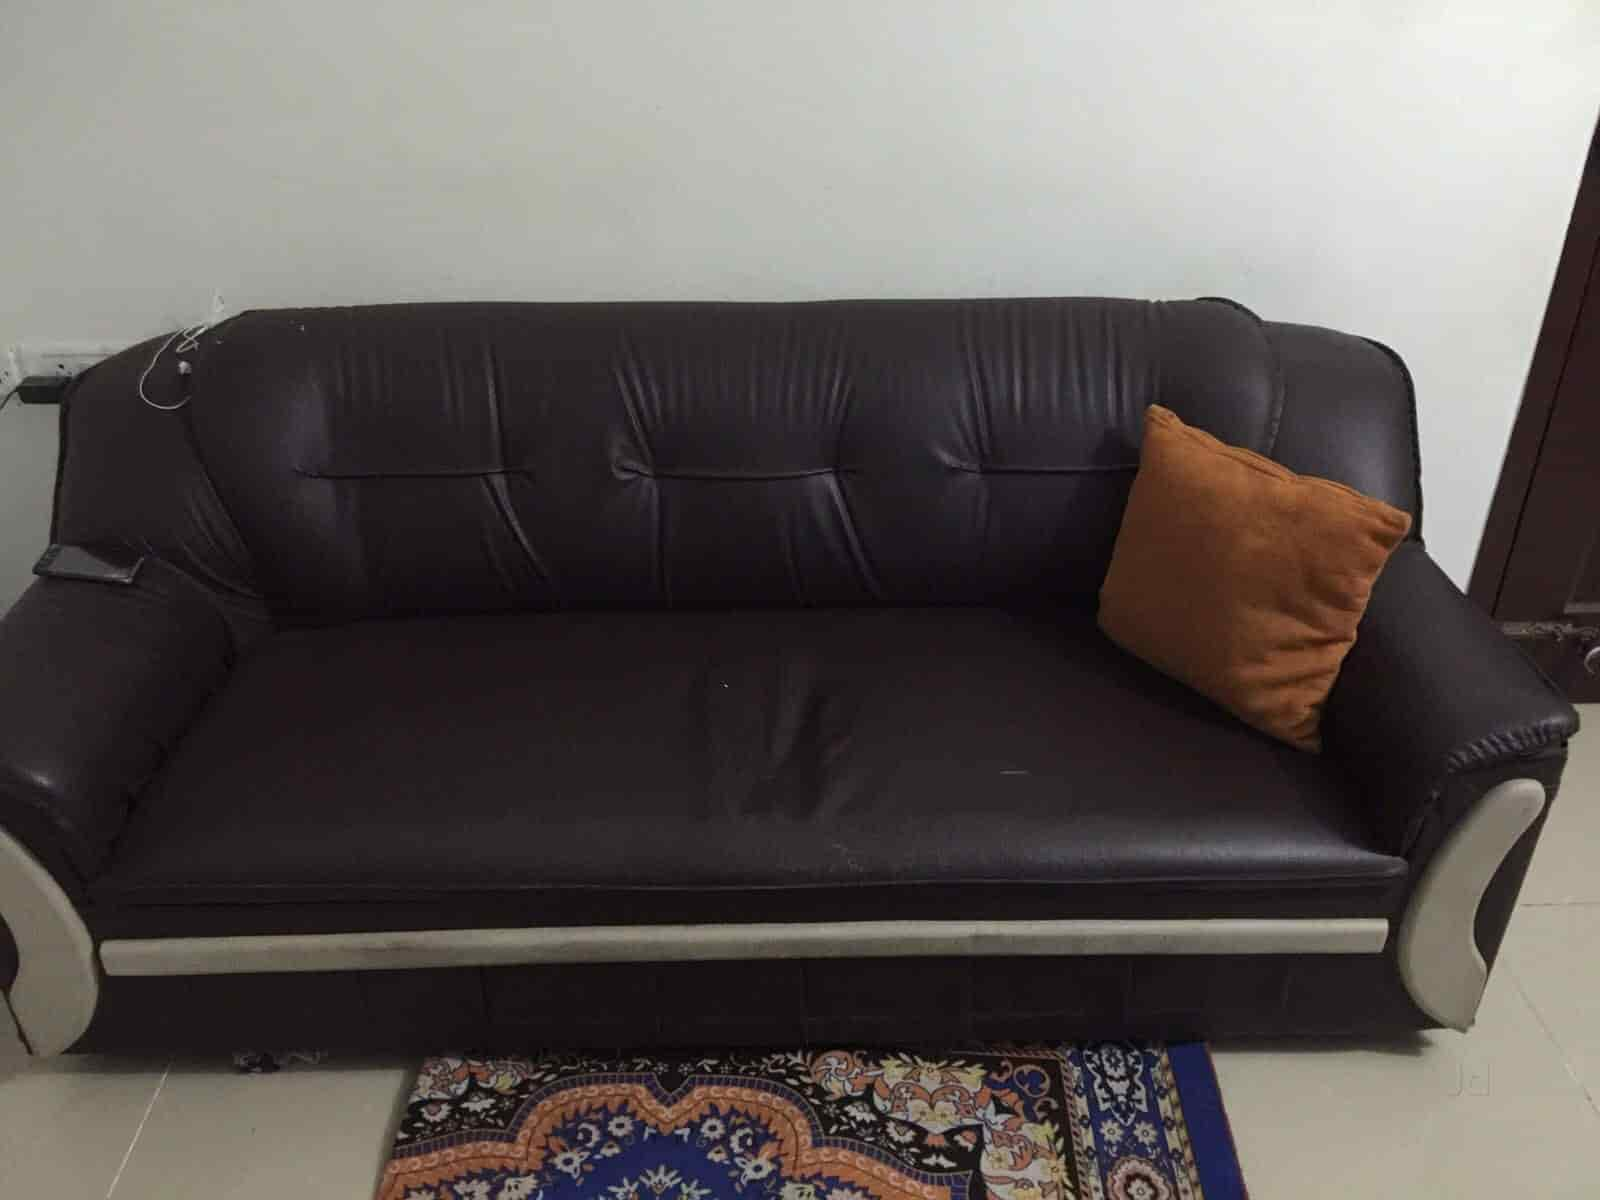 Recliner Sofa Repair Chennai Nifya Furniture And Services Mandaveli Sofa Set Repair